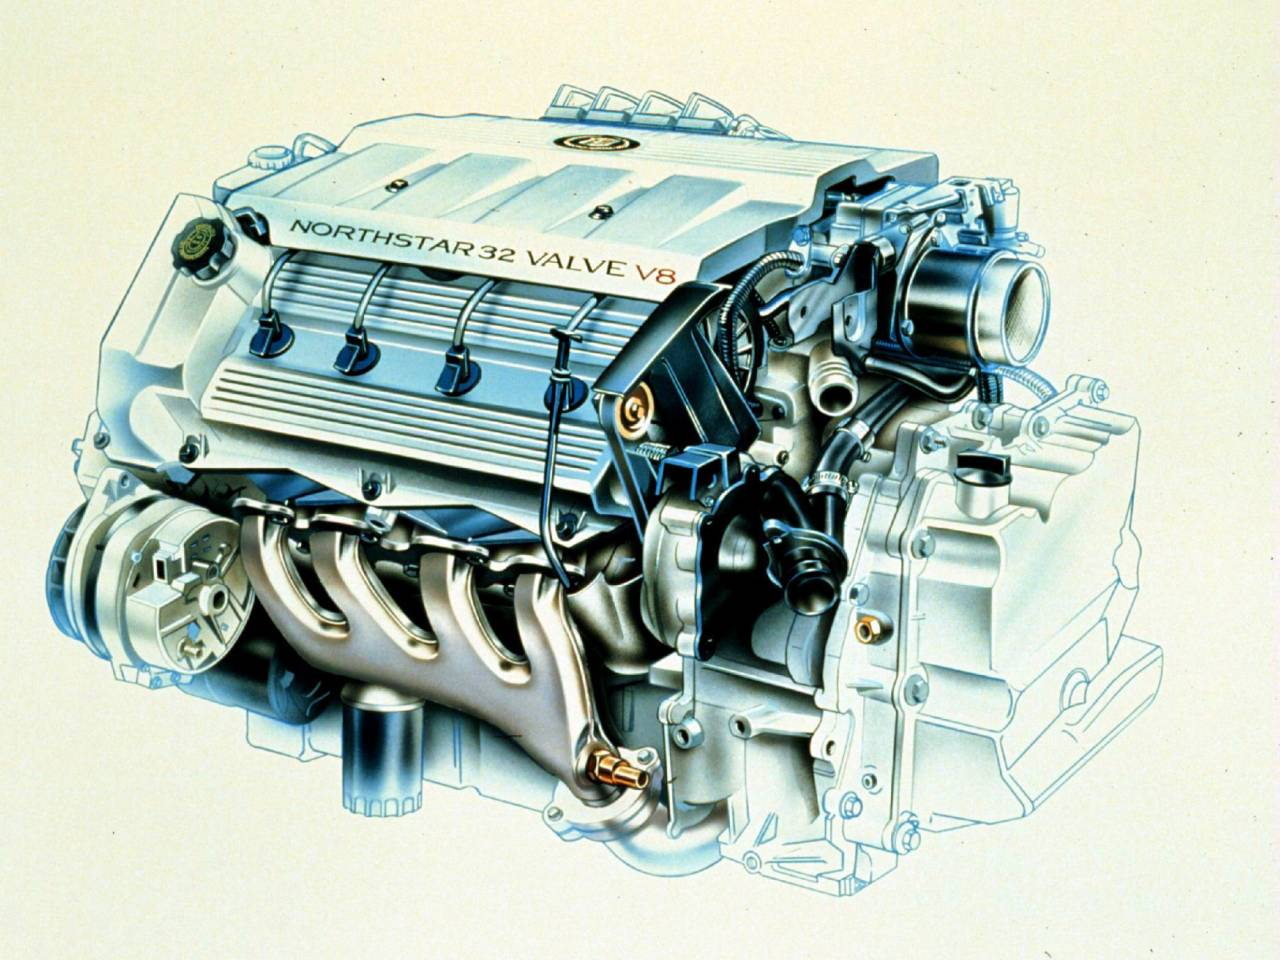 Cadillac Xlr Engine Diagram - books of wiring diagram on northstar engine cross section, northstar v8, 4 6 engine diagram, northstar engine exploded view, 2009 cadillac sts brake diagram, northstar engine dimensions,